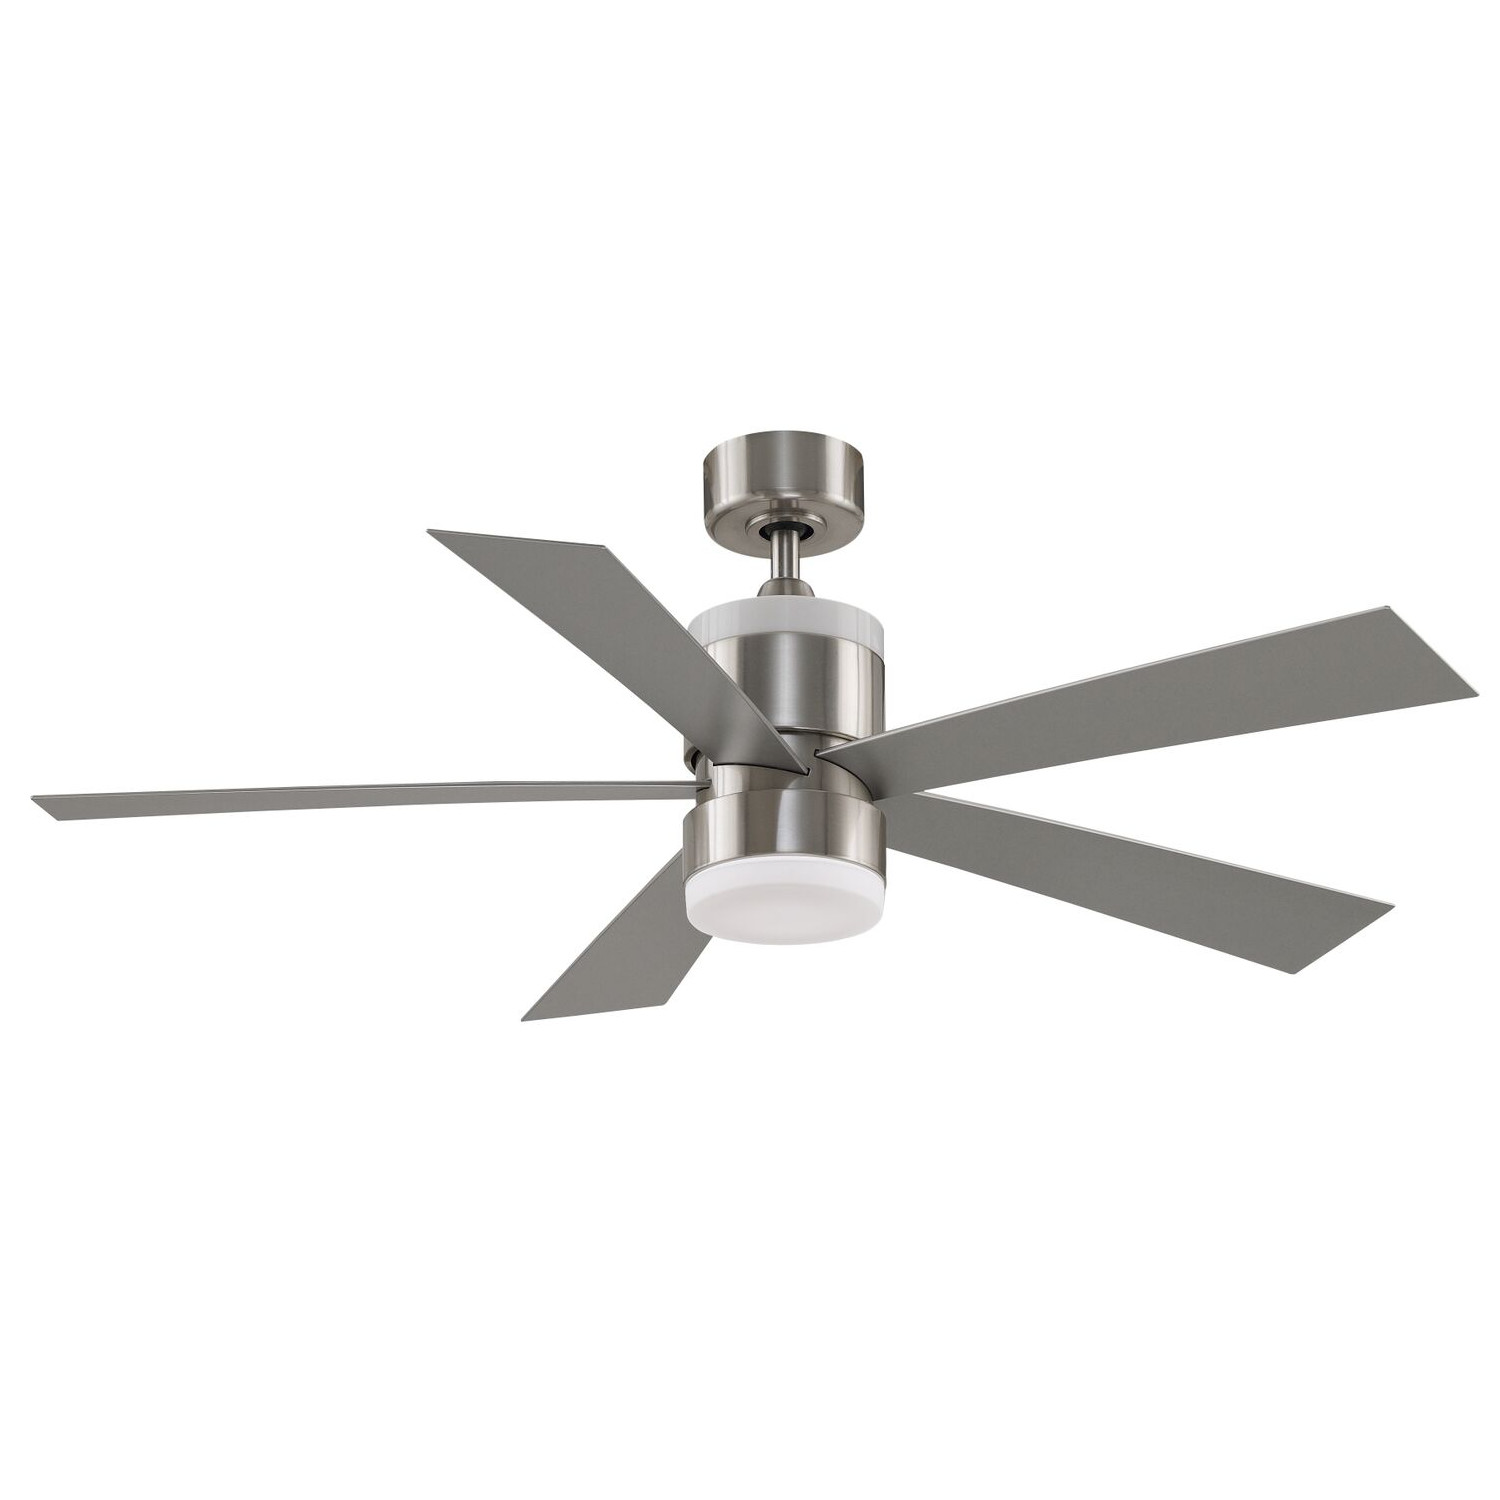 Torch Ceiling Fan With Light By